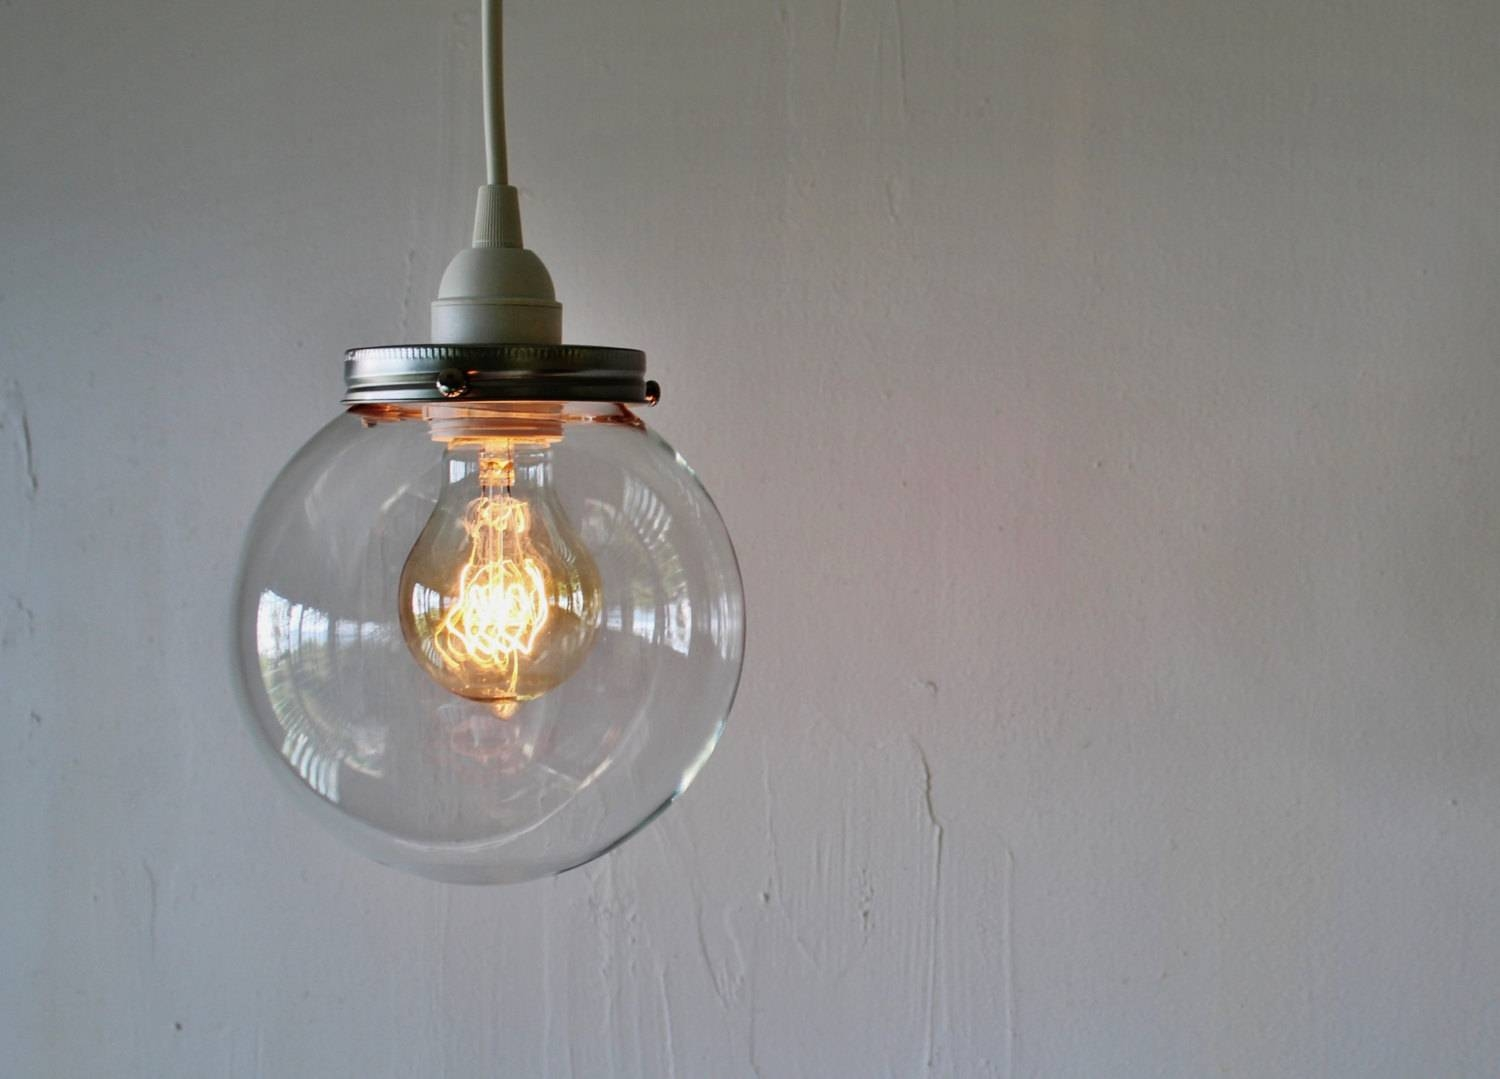 Crystal Ball Pendant Lamp Hanging Light With A Clear Round intended for Clear Glass Ball Pendant Lights (Image 7 of 15)